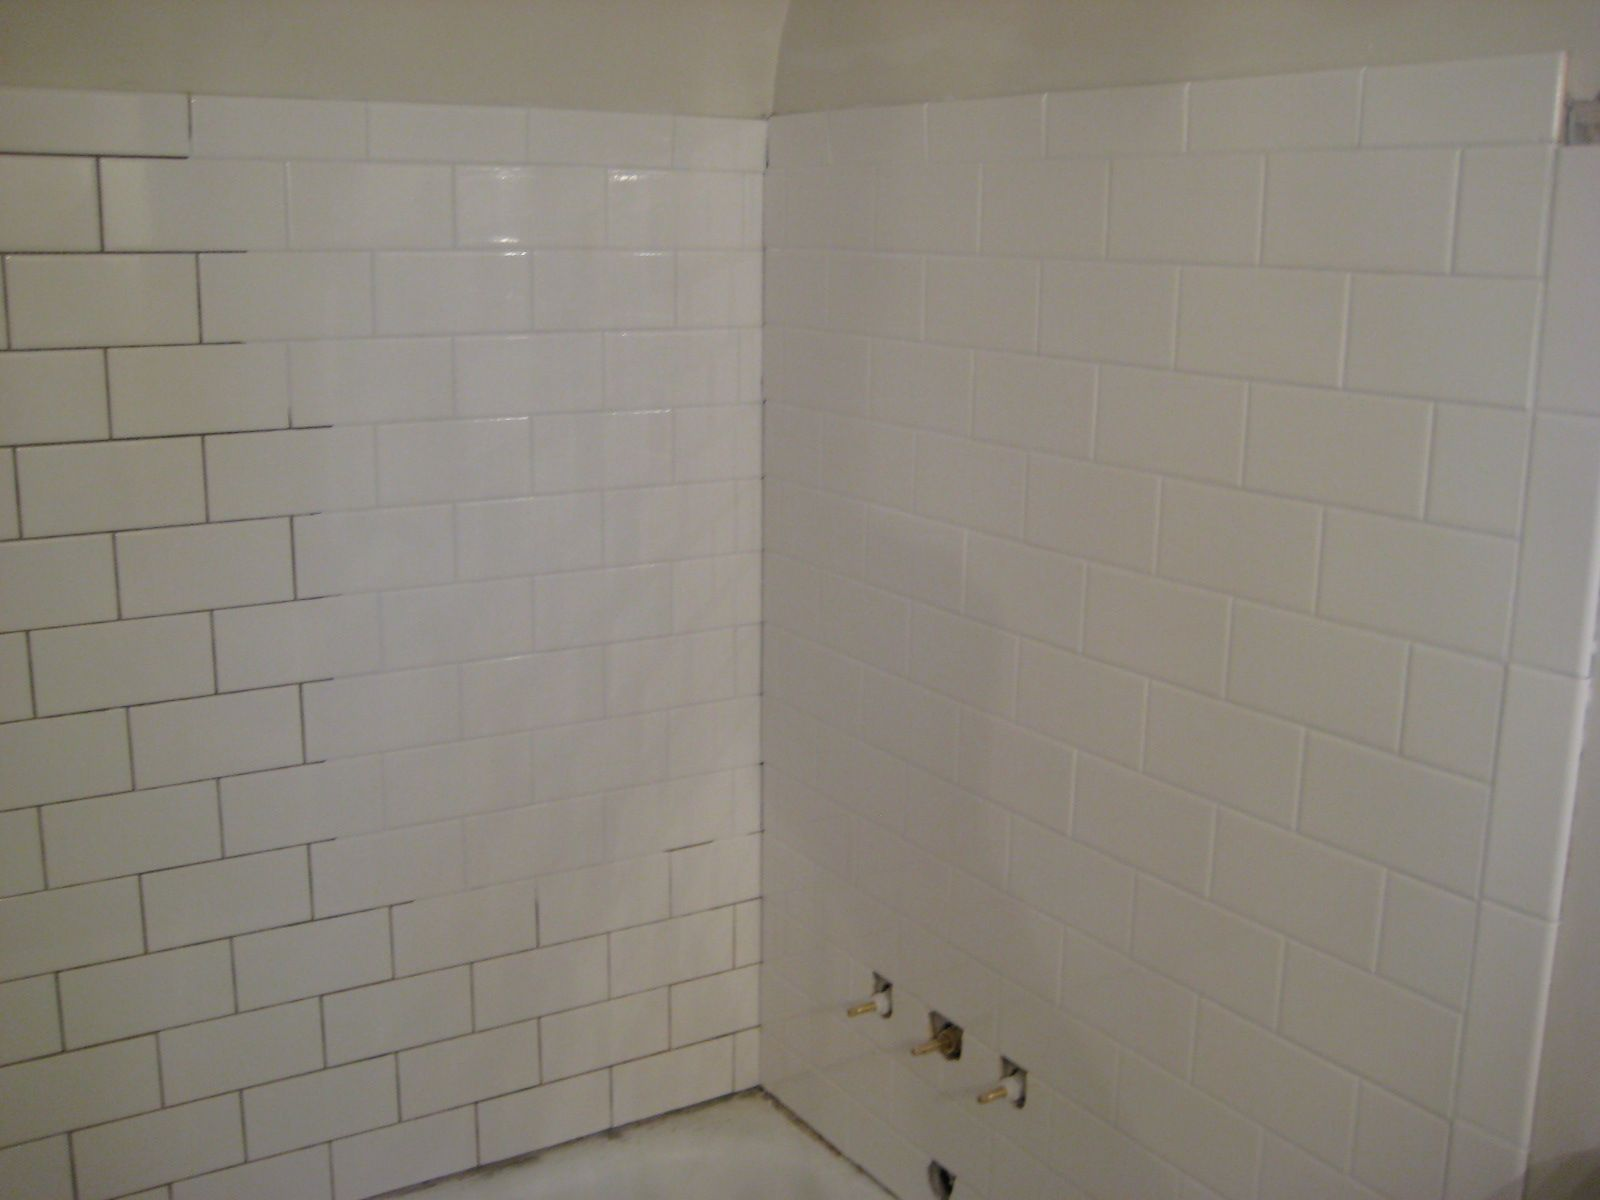 White subway tile white grout choice image tile flooring design white subway tile white grout images tile flooring design ideas white subway tile white grout choice doublecrazyfo Images